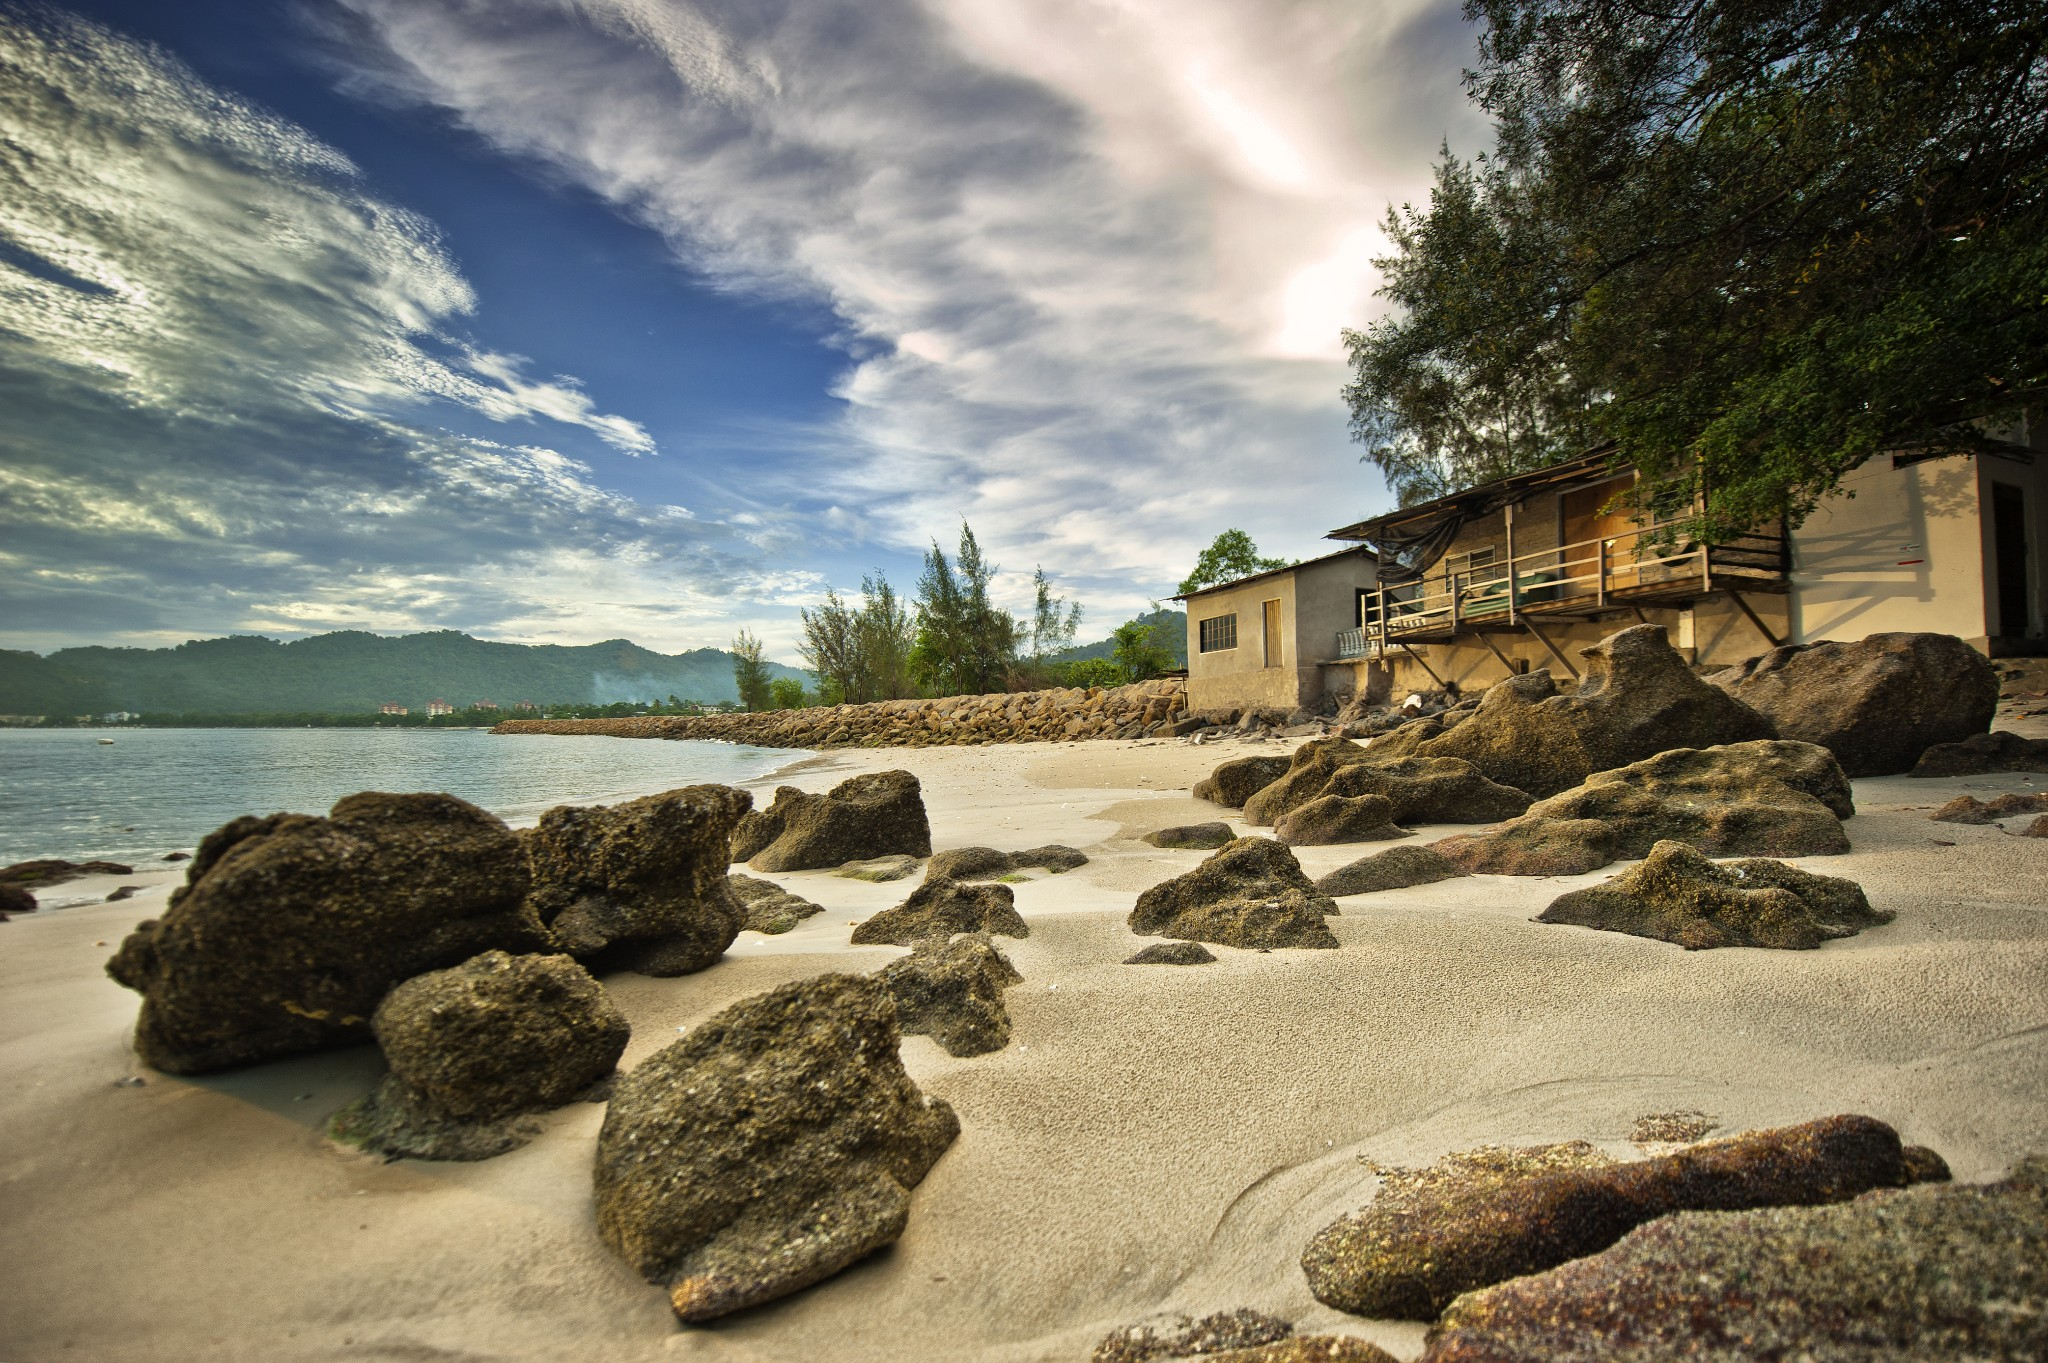 Photo: Penang Second Paradise  Heading down to KL tomorrow to conduct photography workshop with Clement Ng. I`m so excited about it ! I hope the weather is welcoming :)